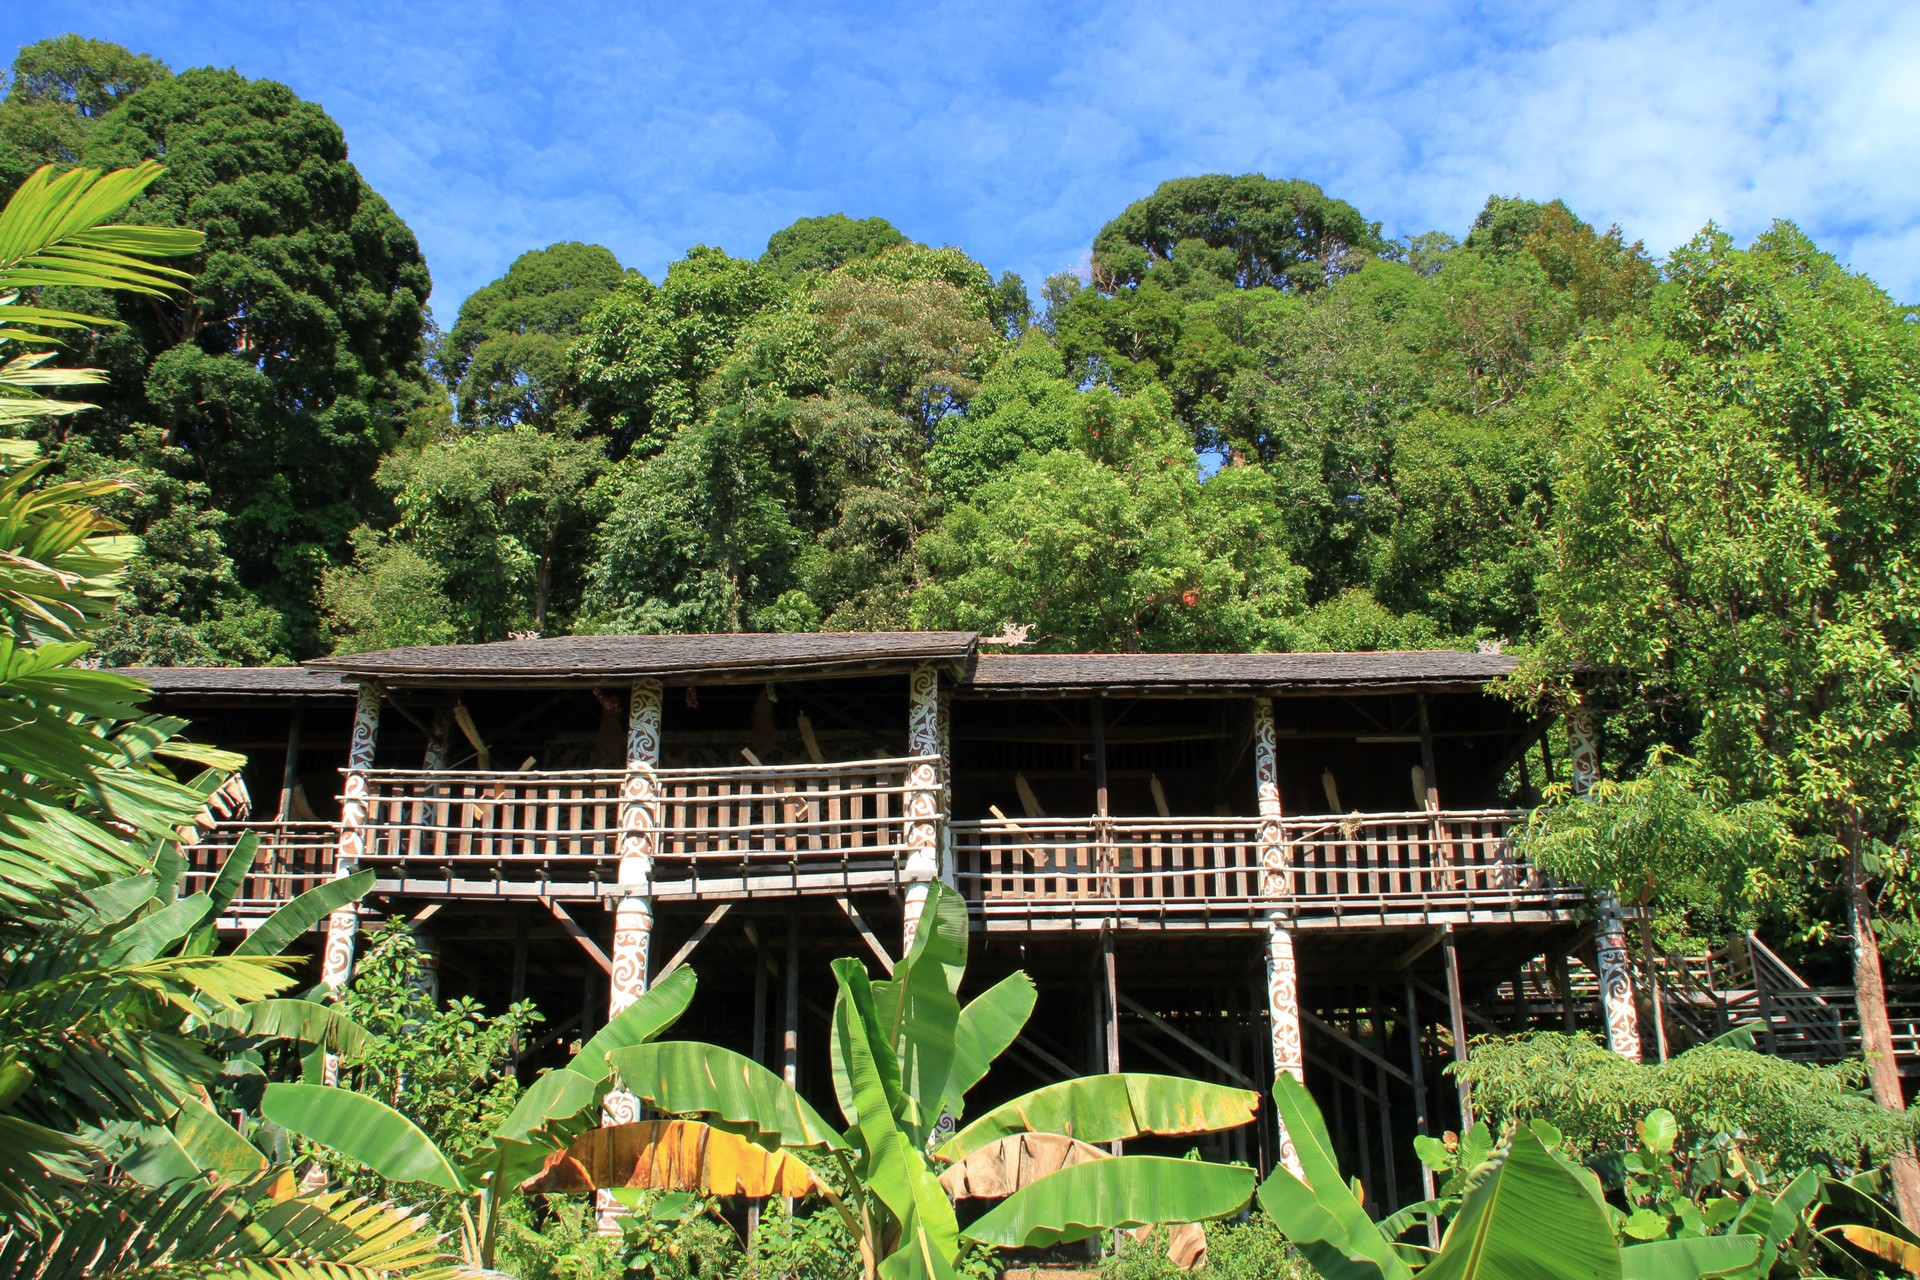 A traditional Iban longhouse in Borneo